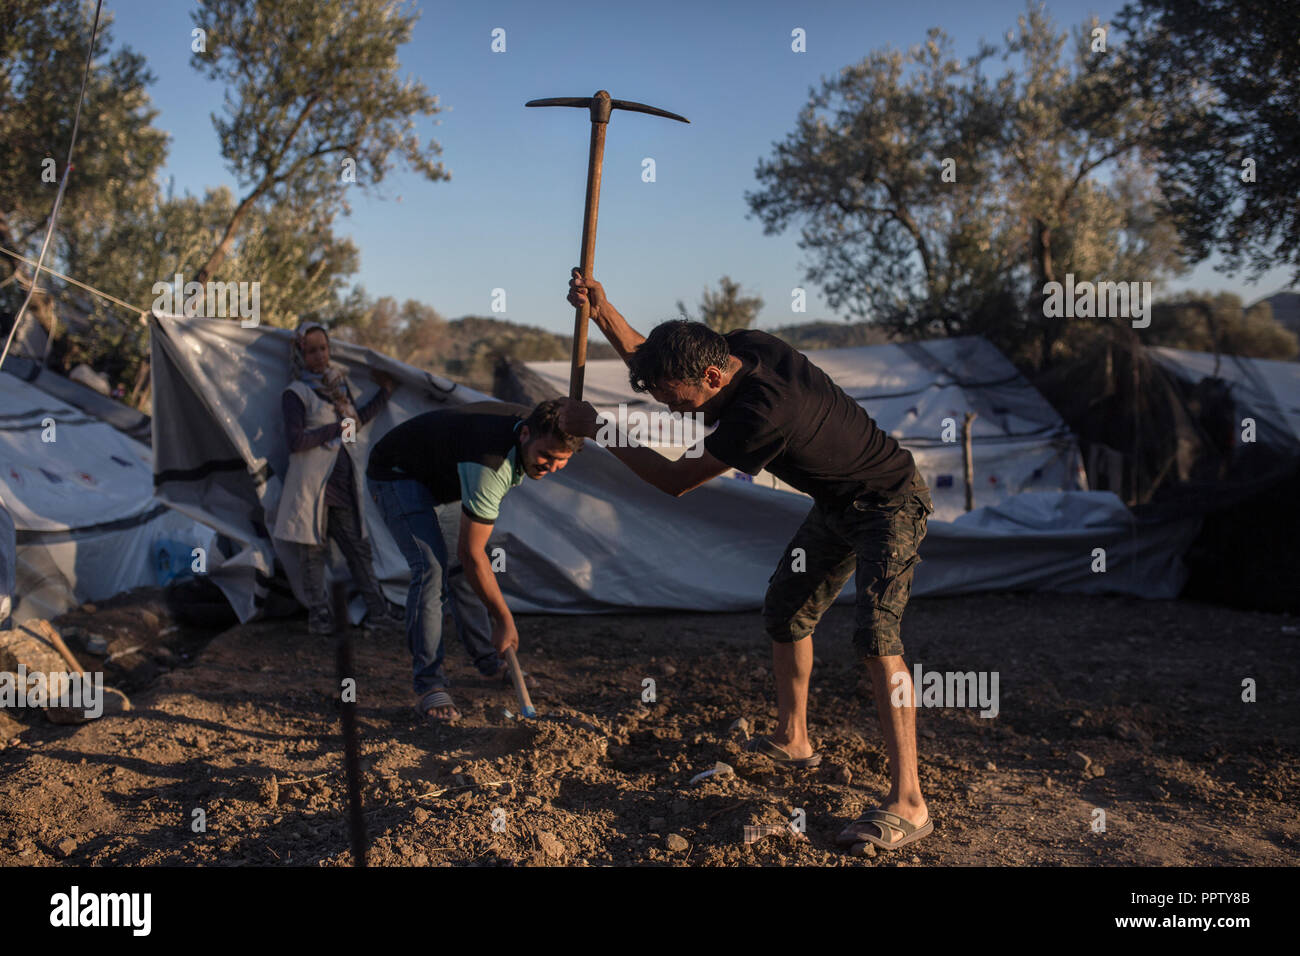 Moira, Greece. 24th Sep, 2018. Refugees and migrants work the ground to pitch a tent in a temporary camp next to the refugee camp of Moria. (to dpa 'Moria: The camp of shame on the island of Lesbos' of 28.09.2018) Credit: Socrates Baltagiannis/dpa/Alamy Live News - Stock Image